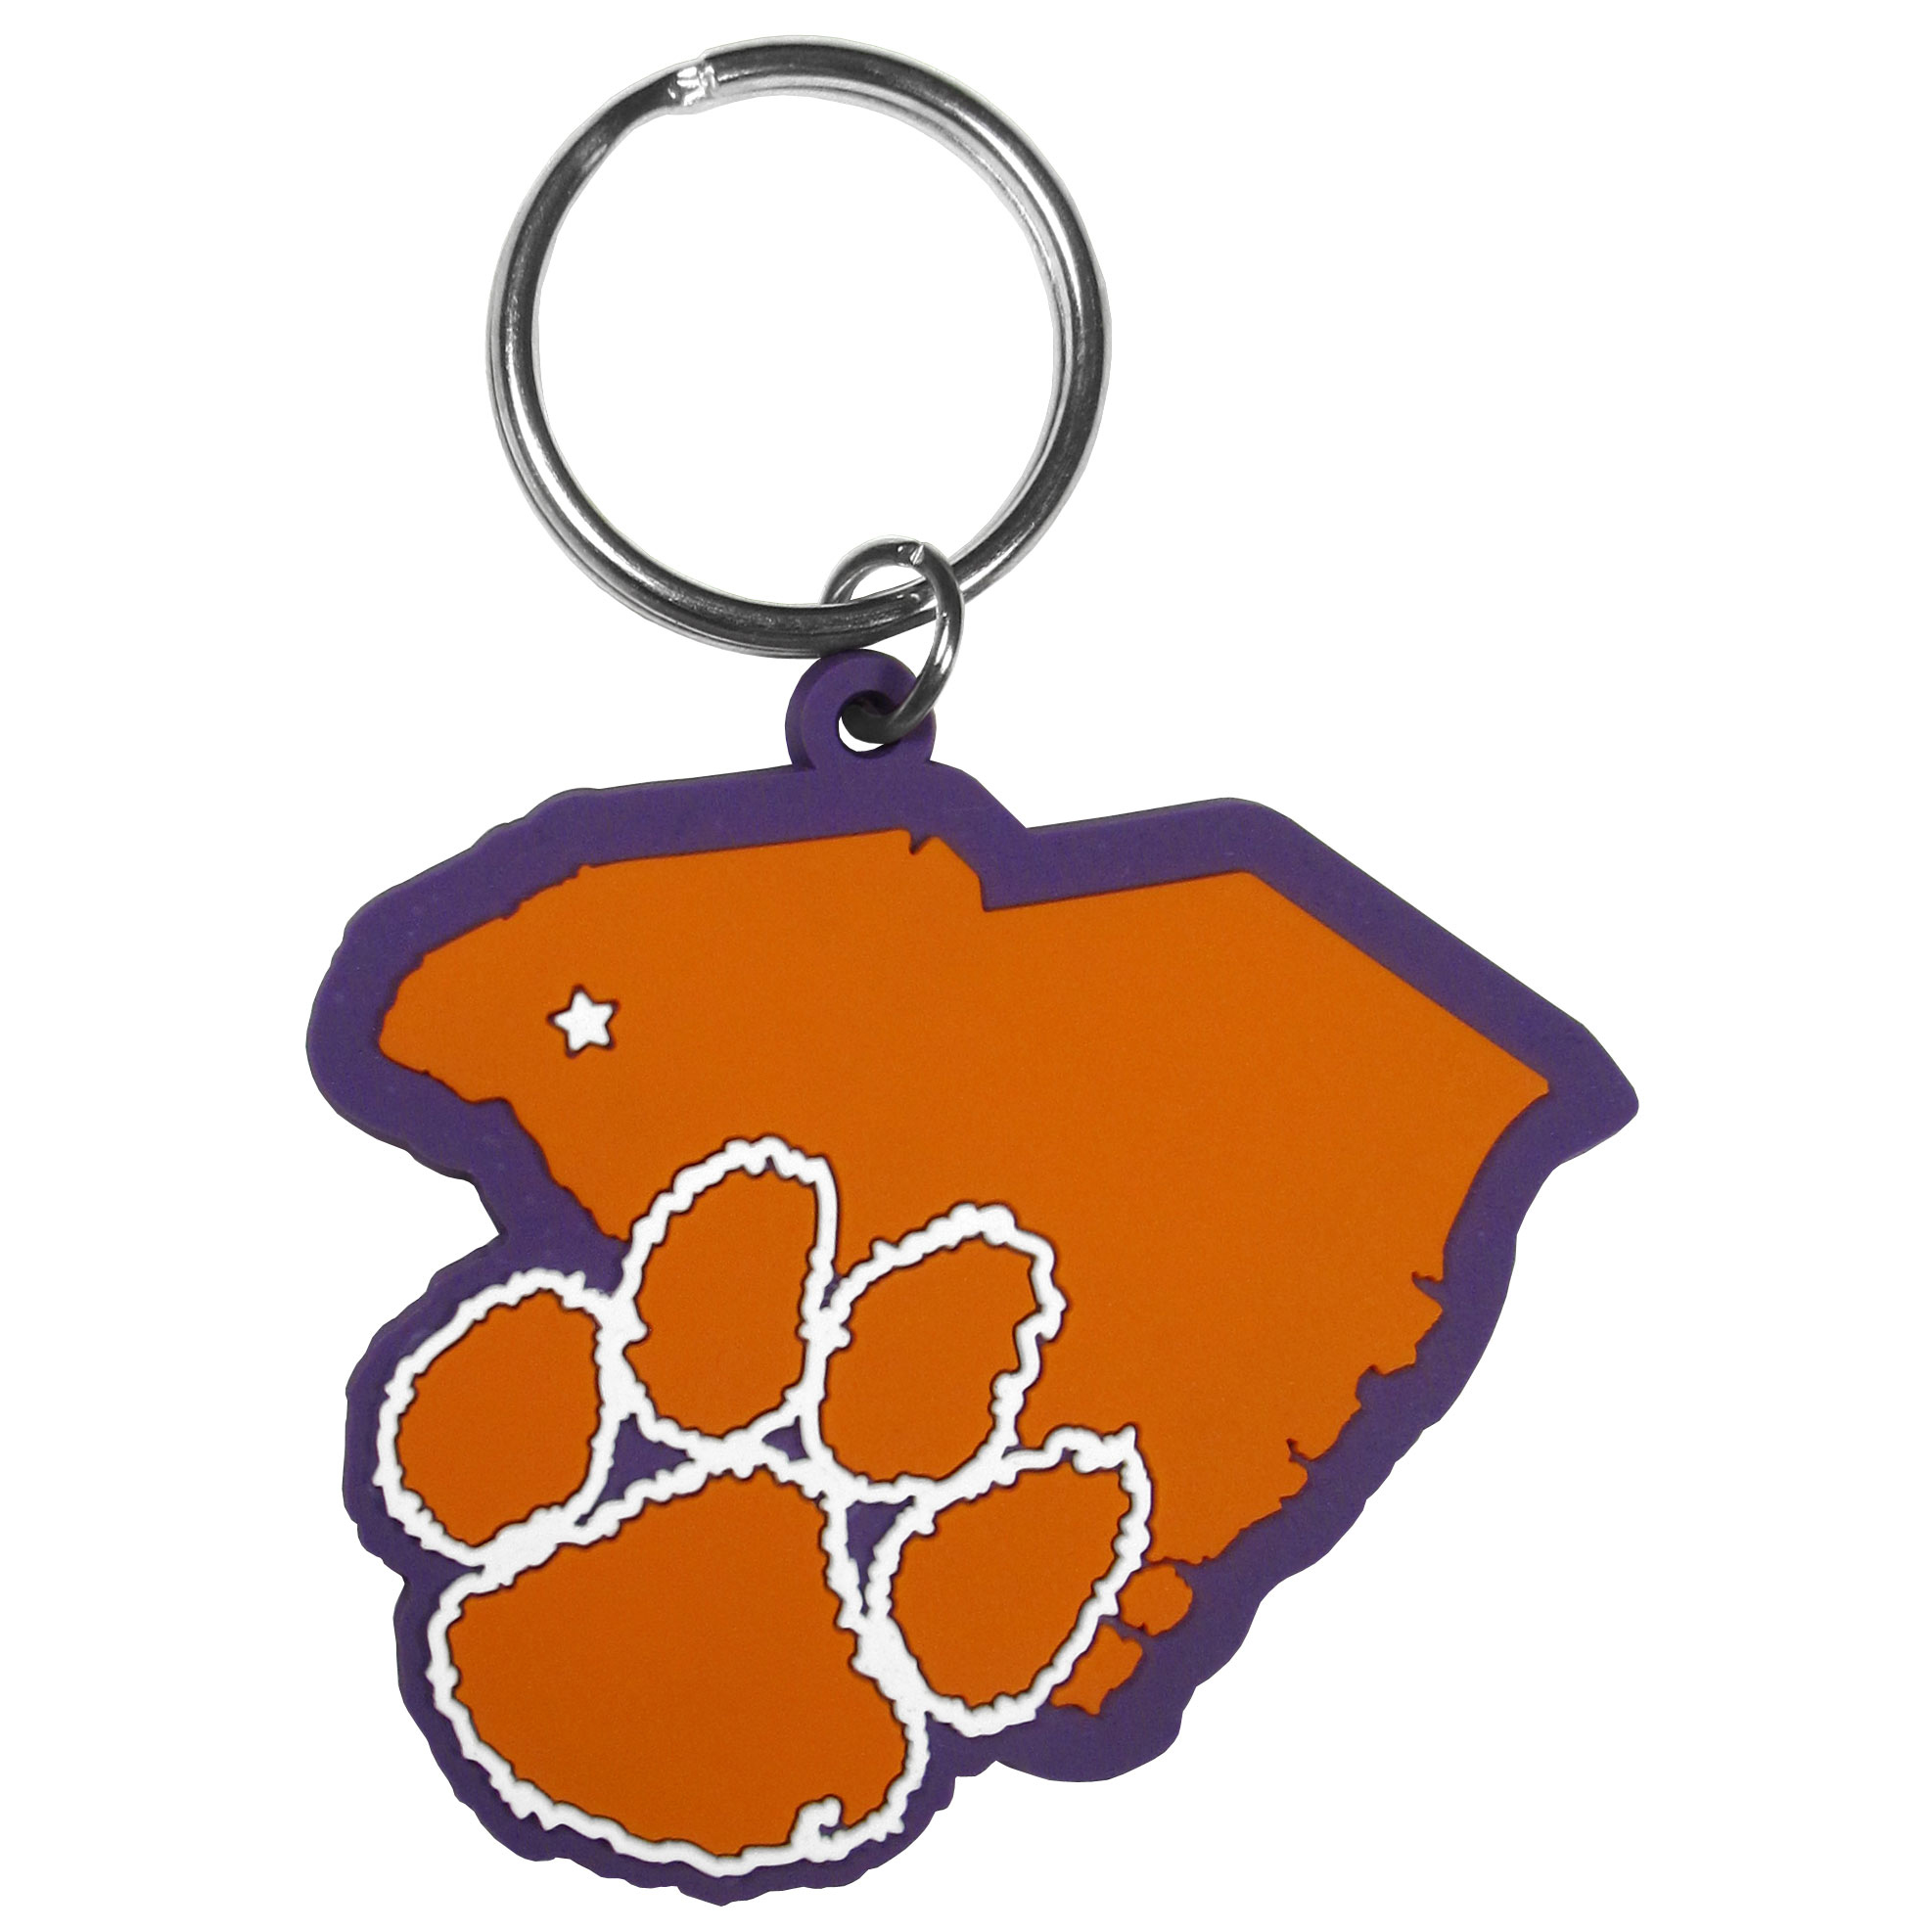 Clemson Tigers Home State Flexi Key Chain - Our flexible Clemson Tigers key chains are a fun way to carry your team with you. The pliable rubber material is extremely durable and the layered colors add a great 3D look to the key chain. This is really where quality and a great price meet to create a true fan favorite.